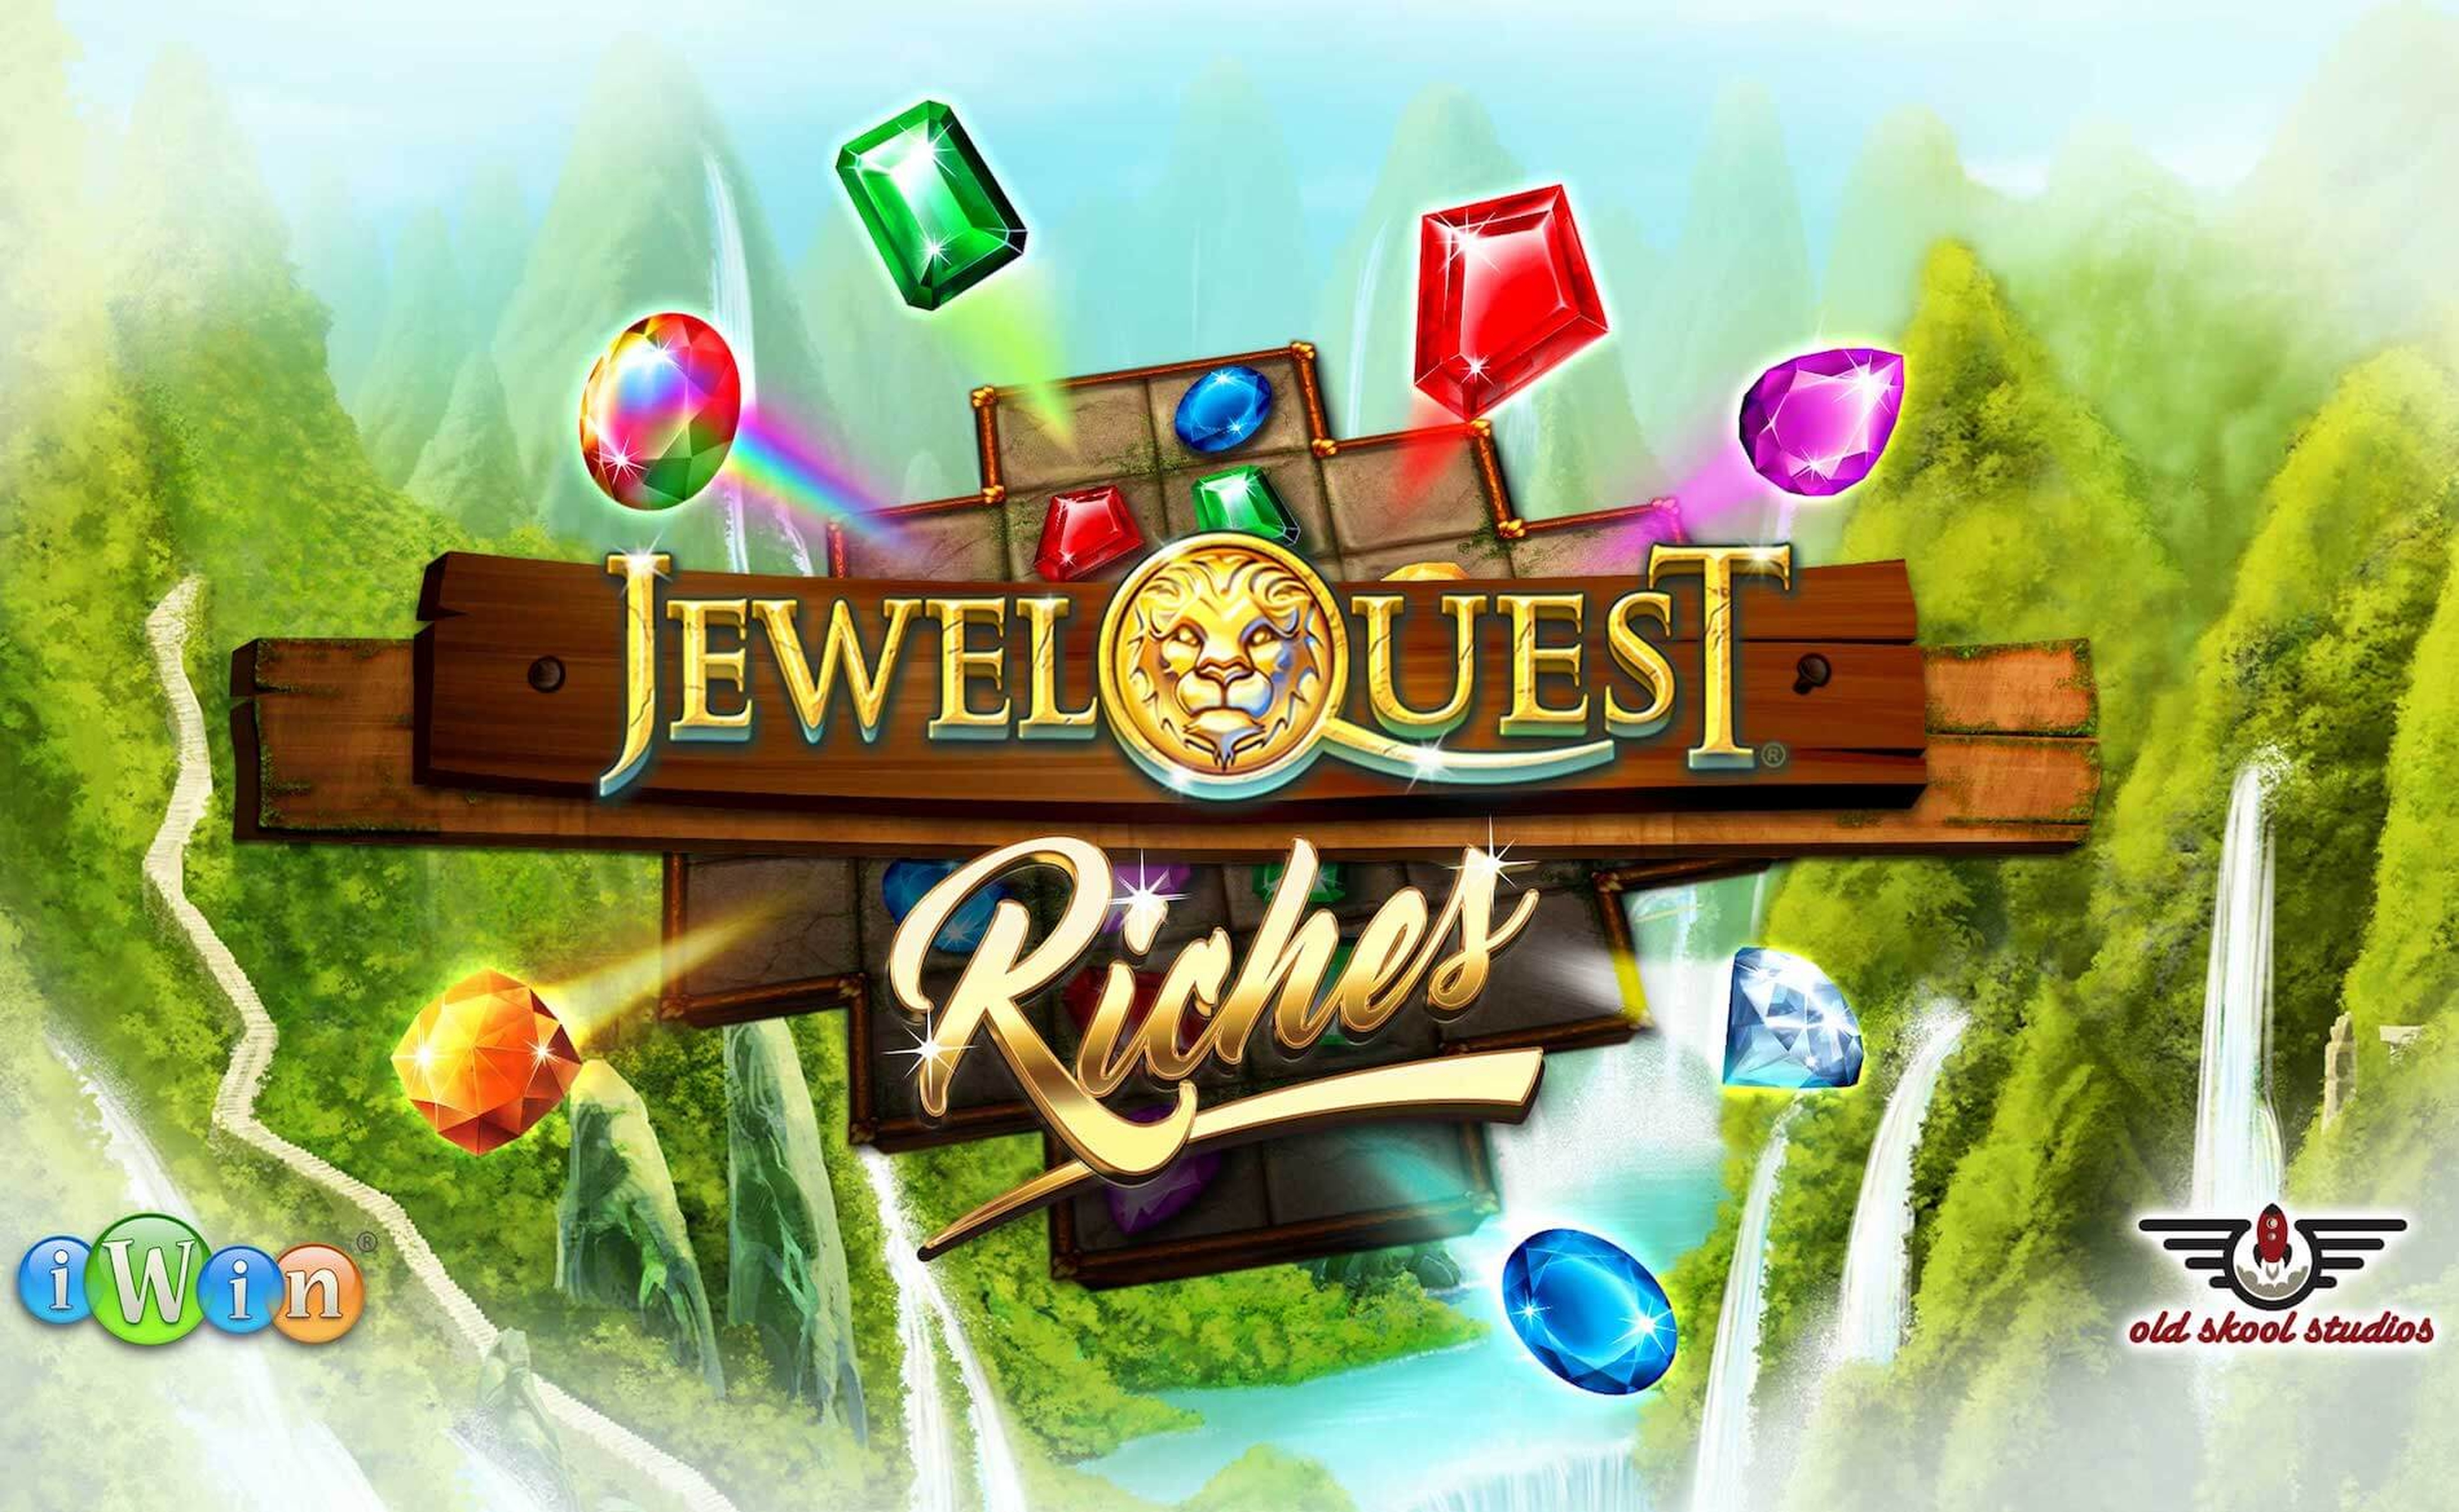 The Jewel Quest Riches Online Slot Demo Game by Old Skool Studios